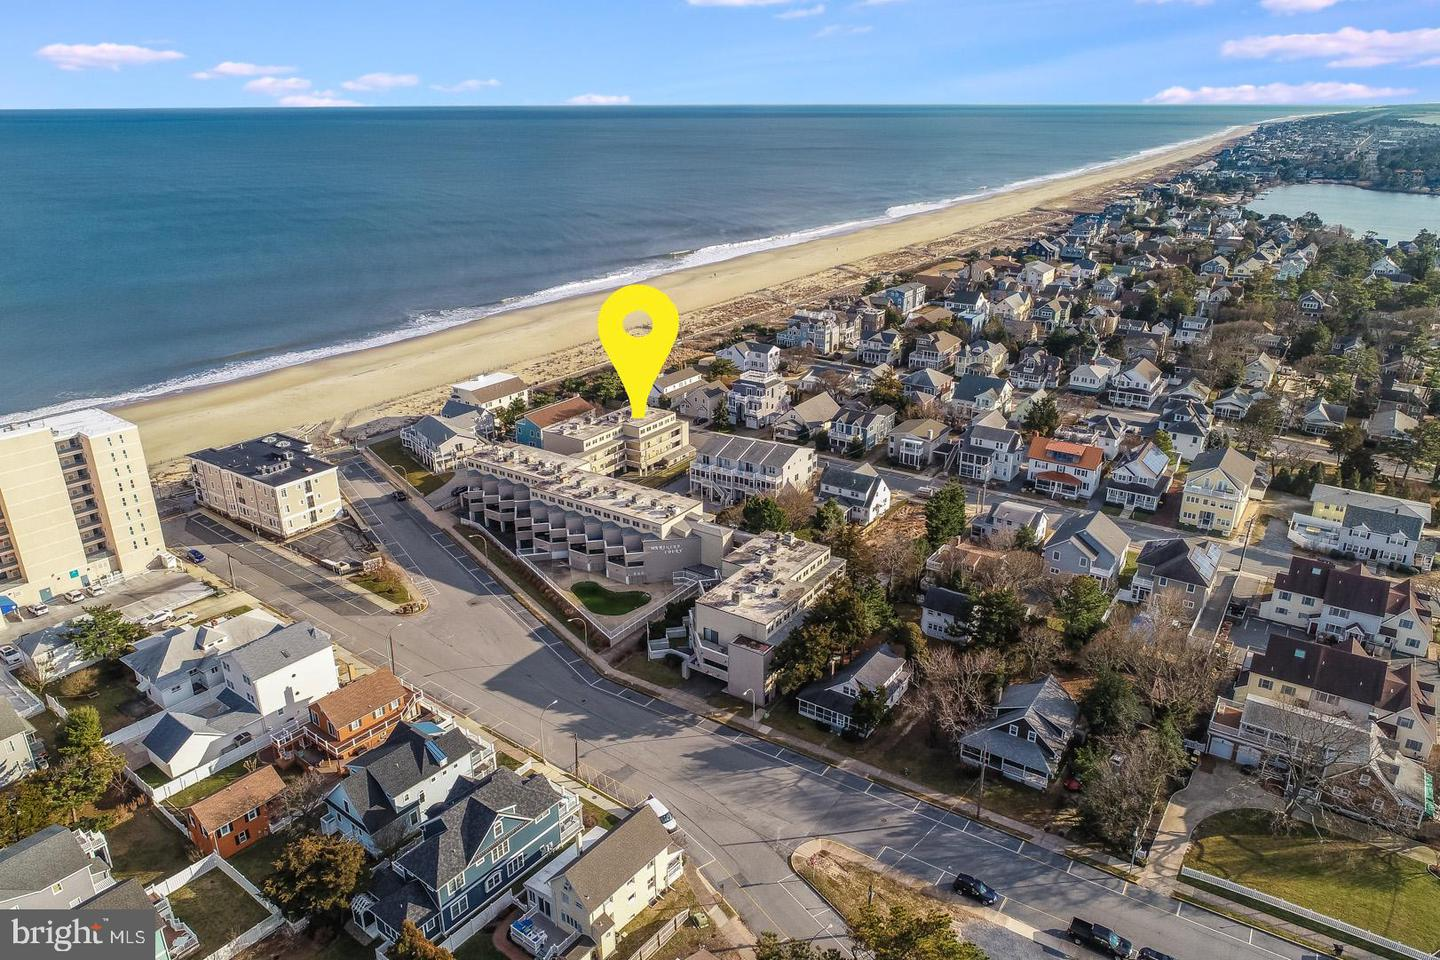 DESU129972-301391657596-2019-02-05-22-53-54 Browse our Lewes, Dewey, and Rehoboth Beach Real Estate Listings - Rehoboth Beach Real Estate - Bryce Lingo and Shaun Tull REALTORS, Rehoboth Beach, Delaware